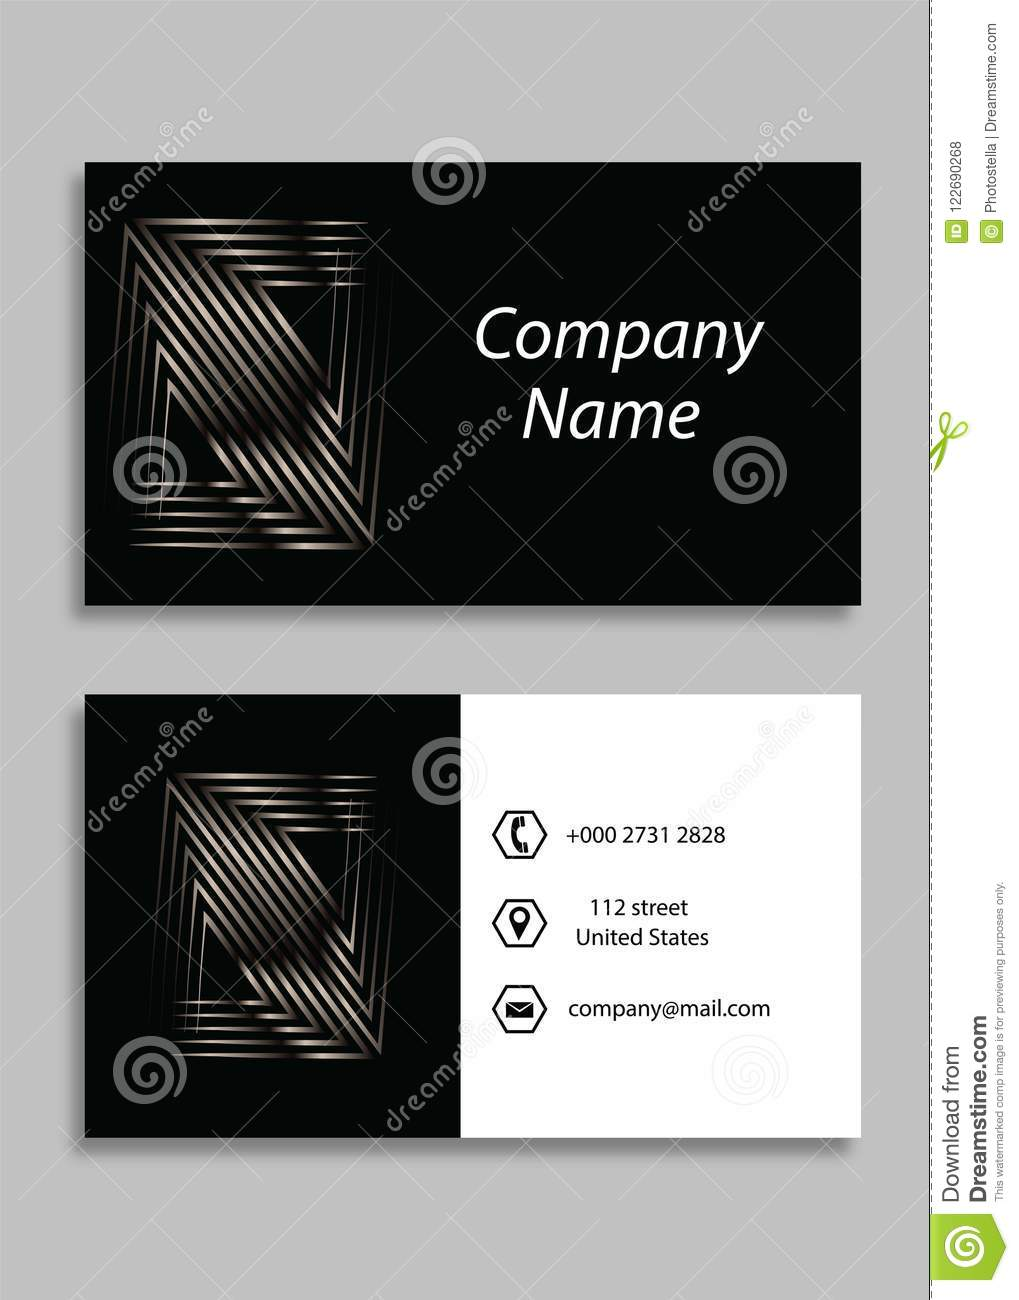 Black business card front and back vector business card template black business card front and back vector business card template accmission Image collections